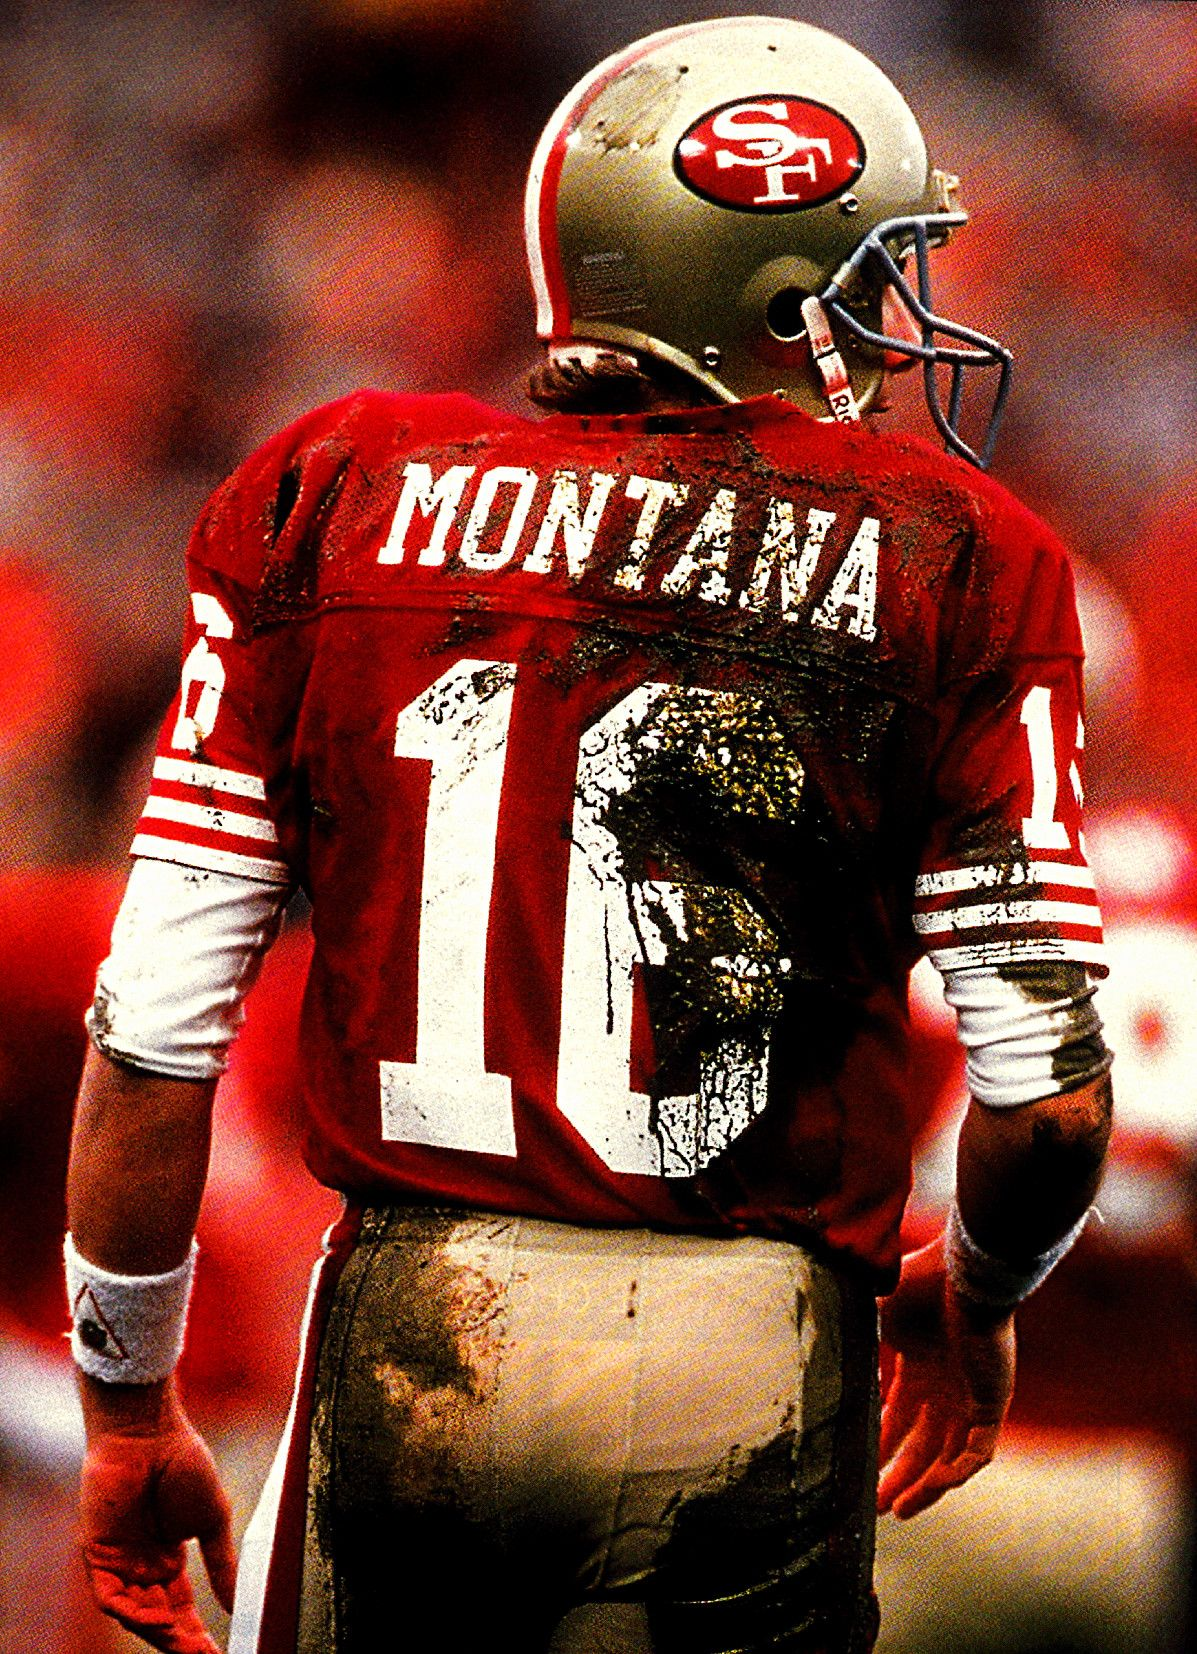 Joe Montana The man the myth the legend. Threw 11